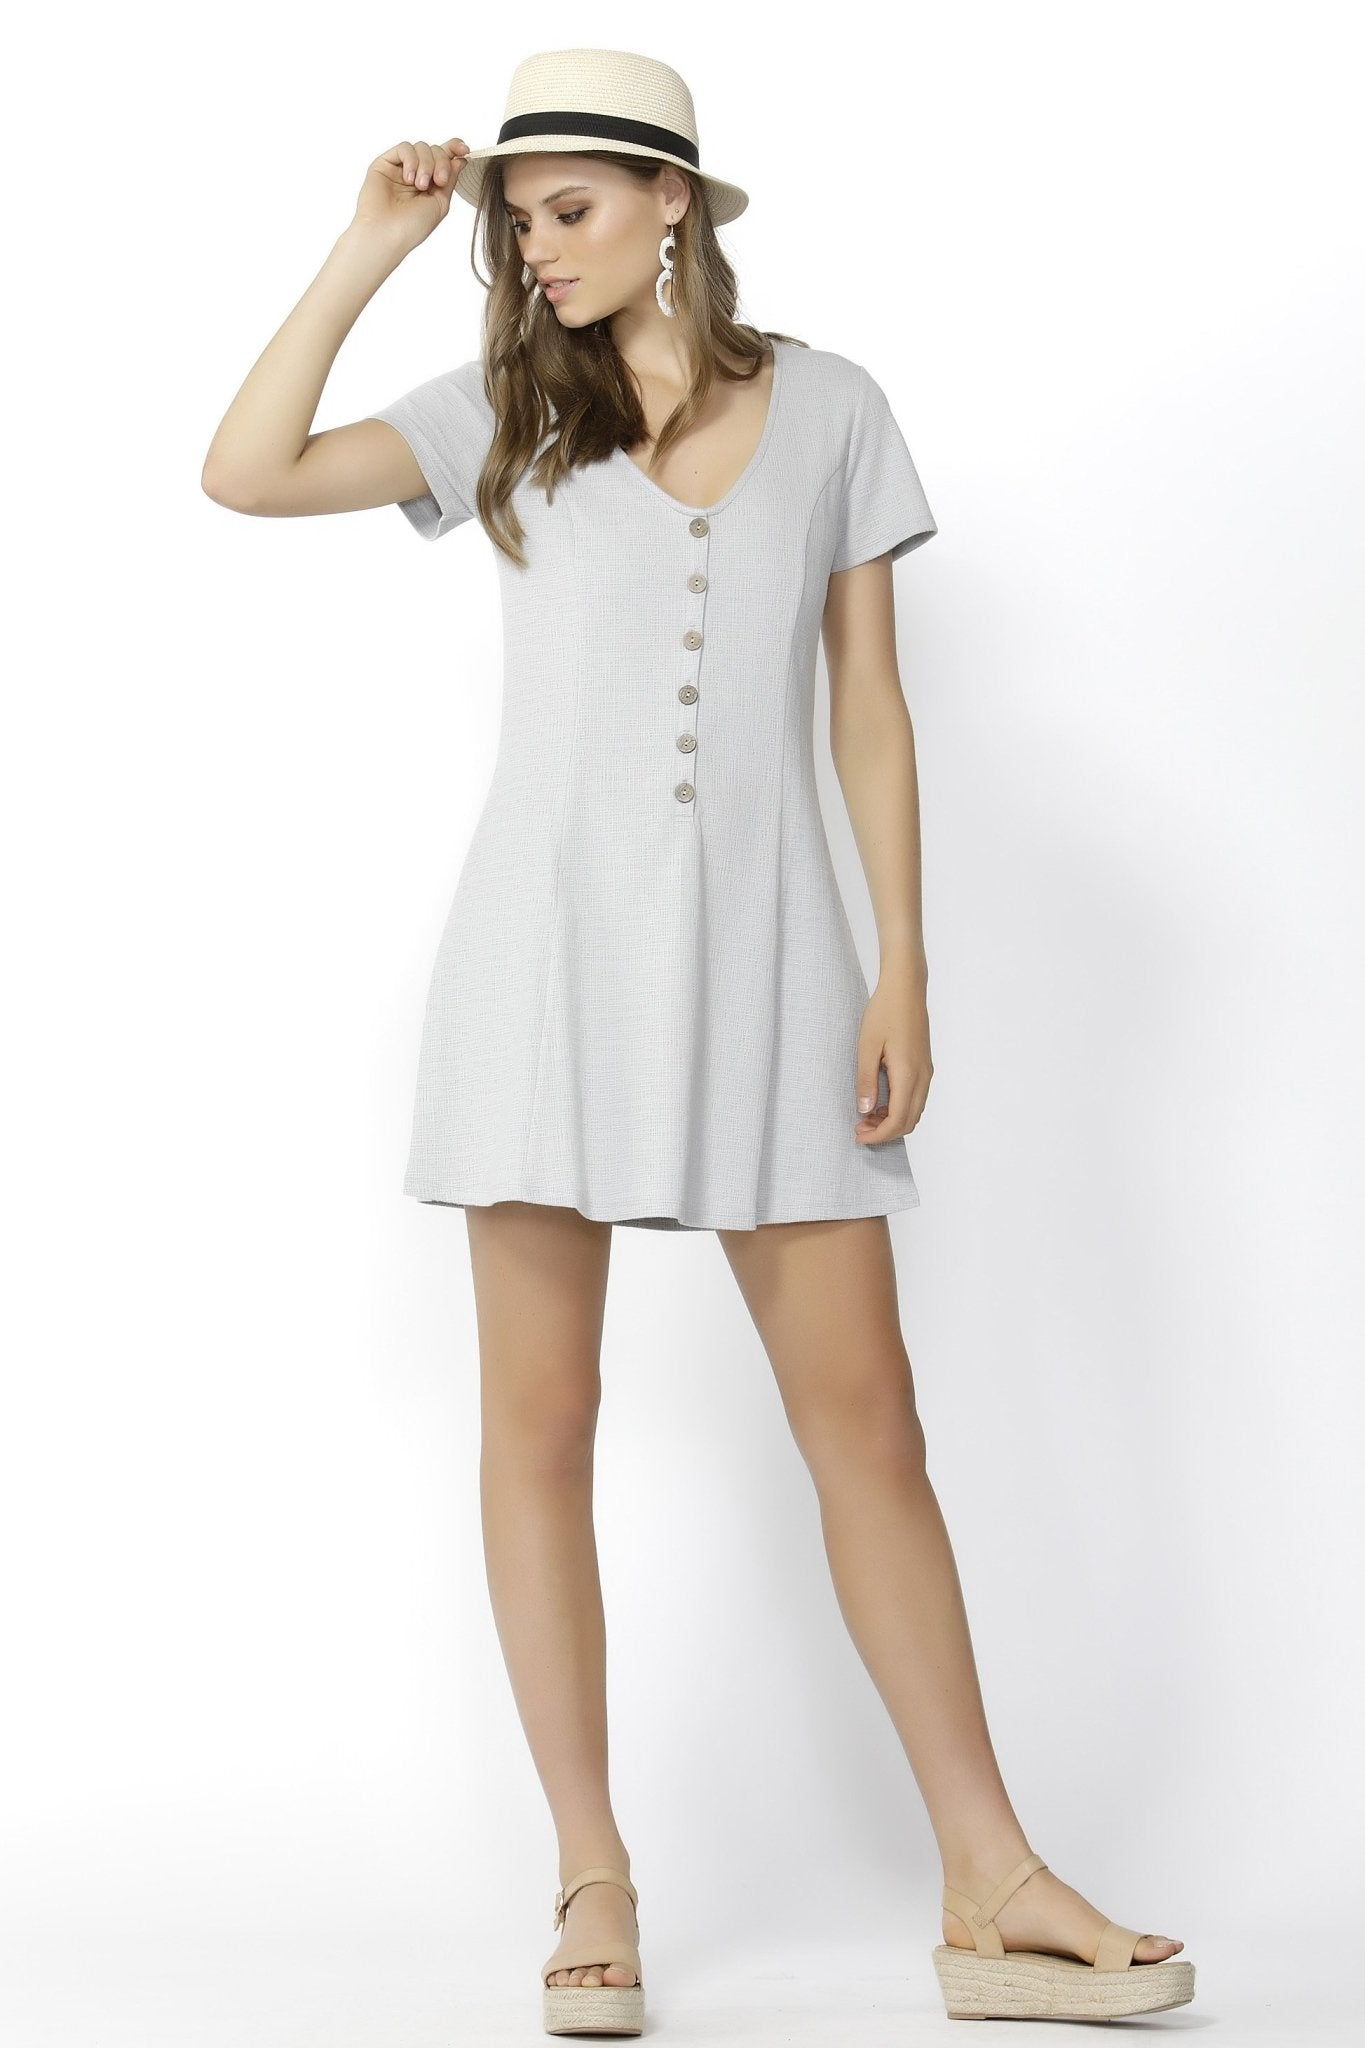 Sass Young At Heart Buttoned Dress in Silver Marle - Hey Sara